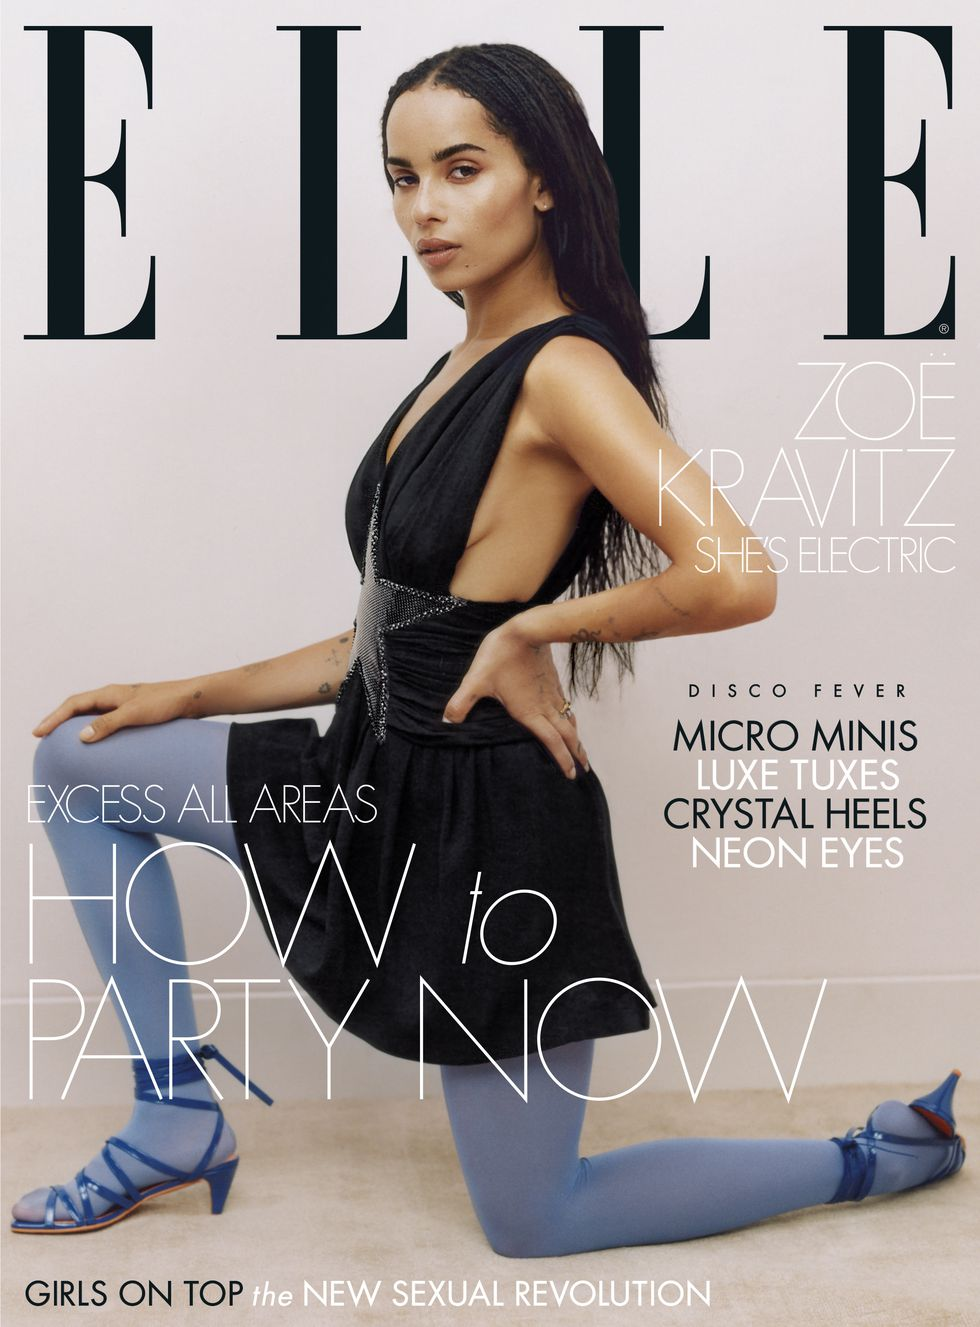 "<a href=""https://www.elle.com/uk/life-and-culture/a24780442/zoe-kravitz-is-a-rebel-with-a-cause/"" target=""_blank"">ELLE UK</a>"